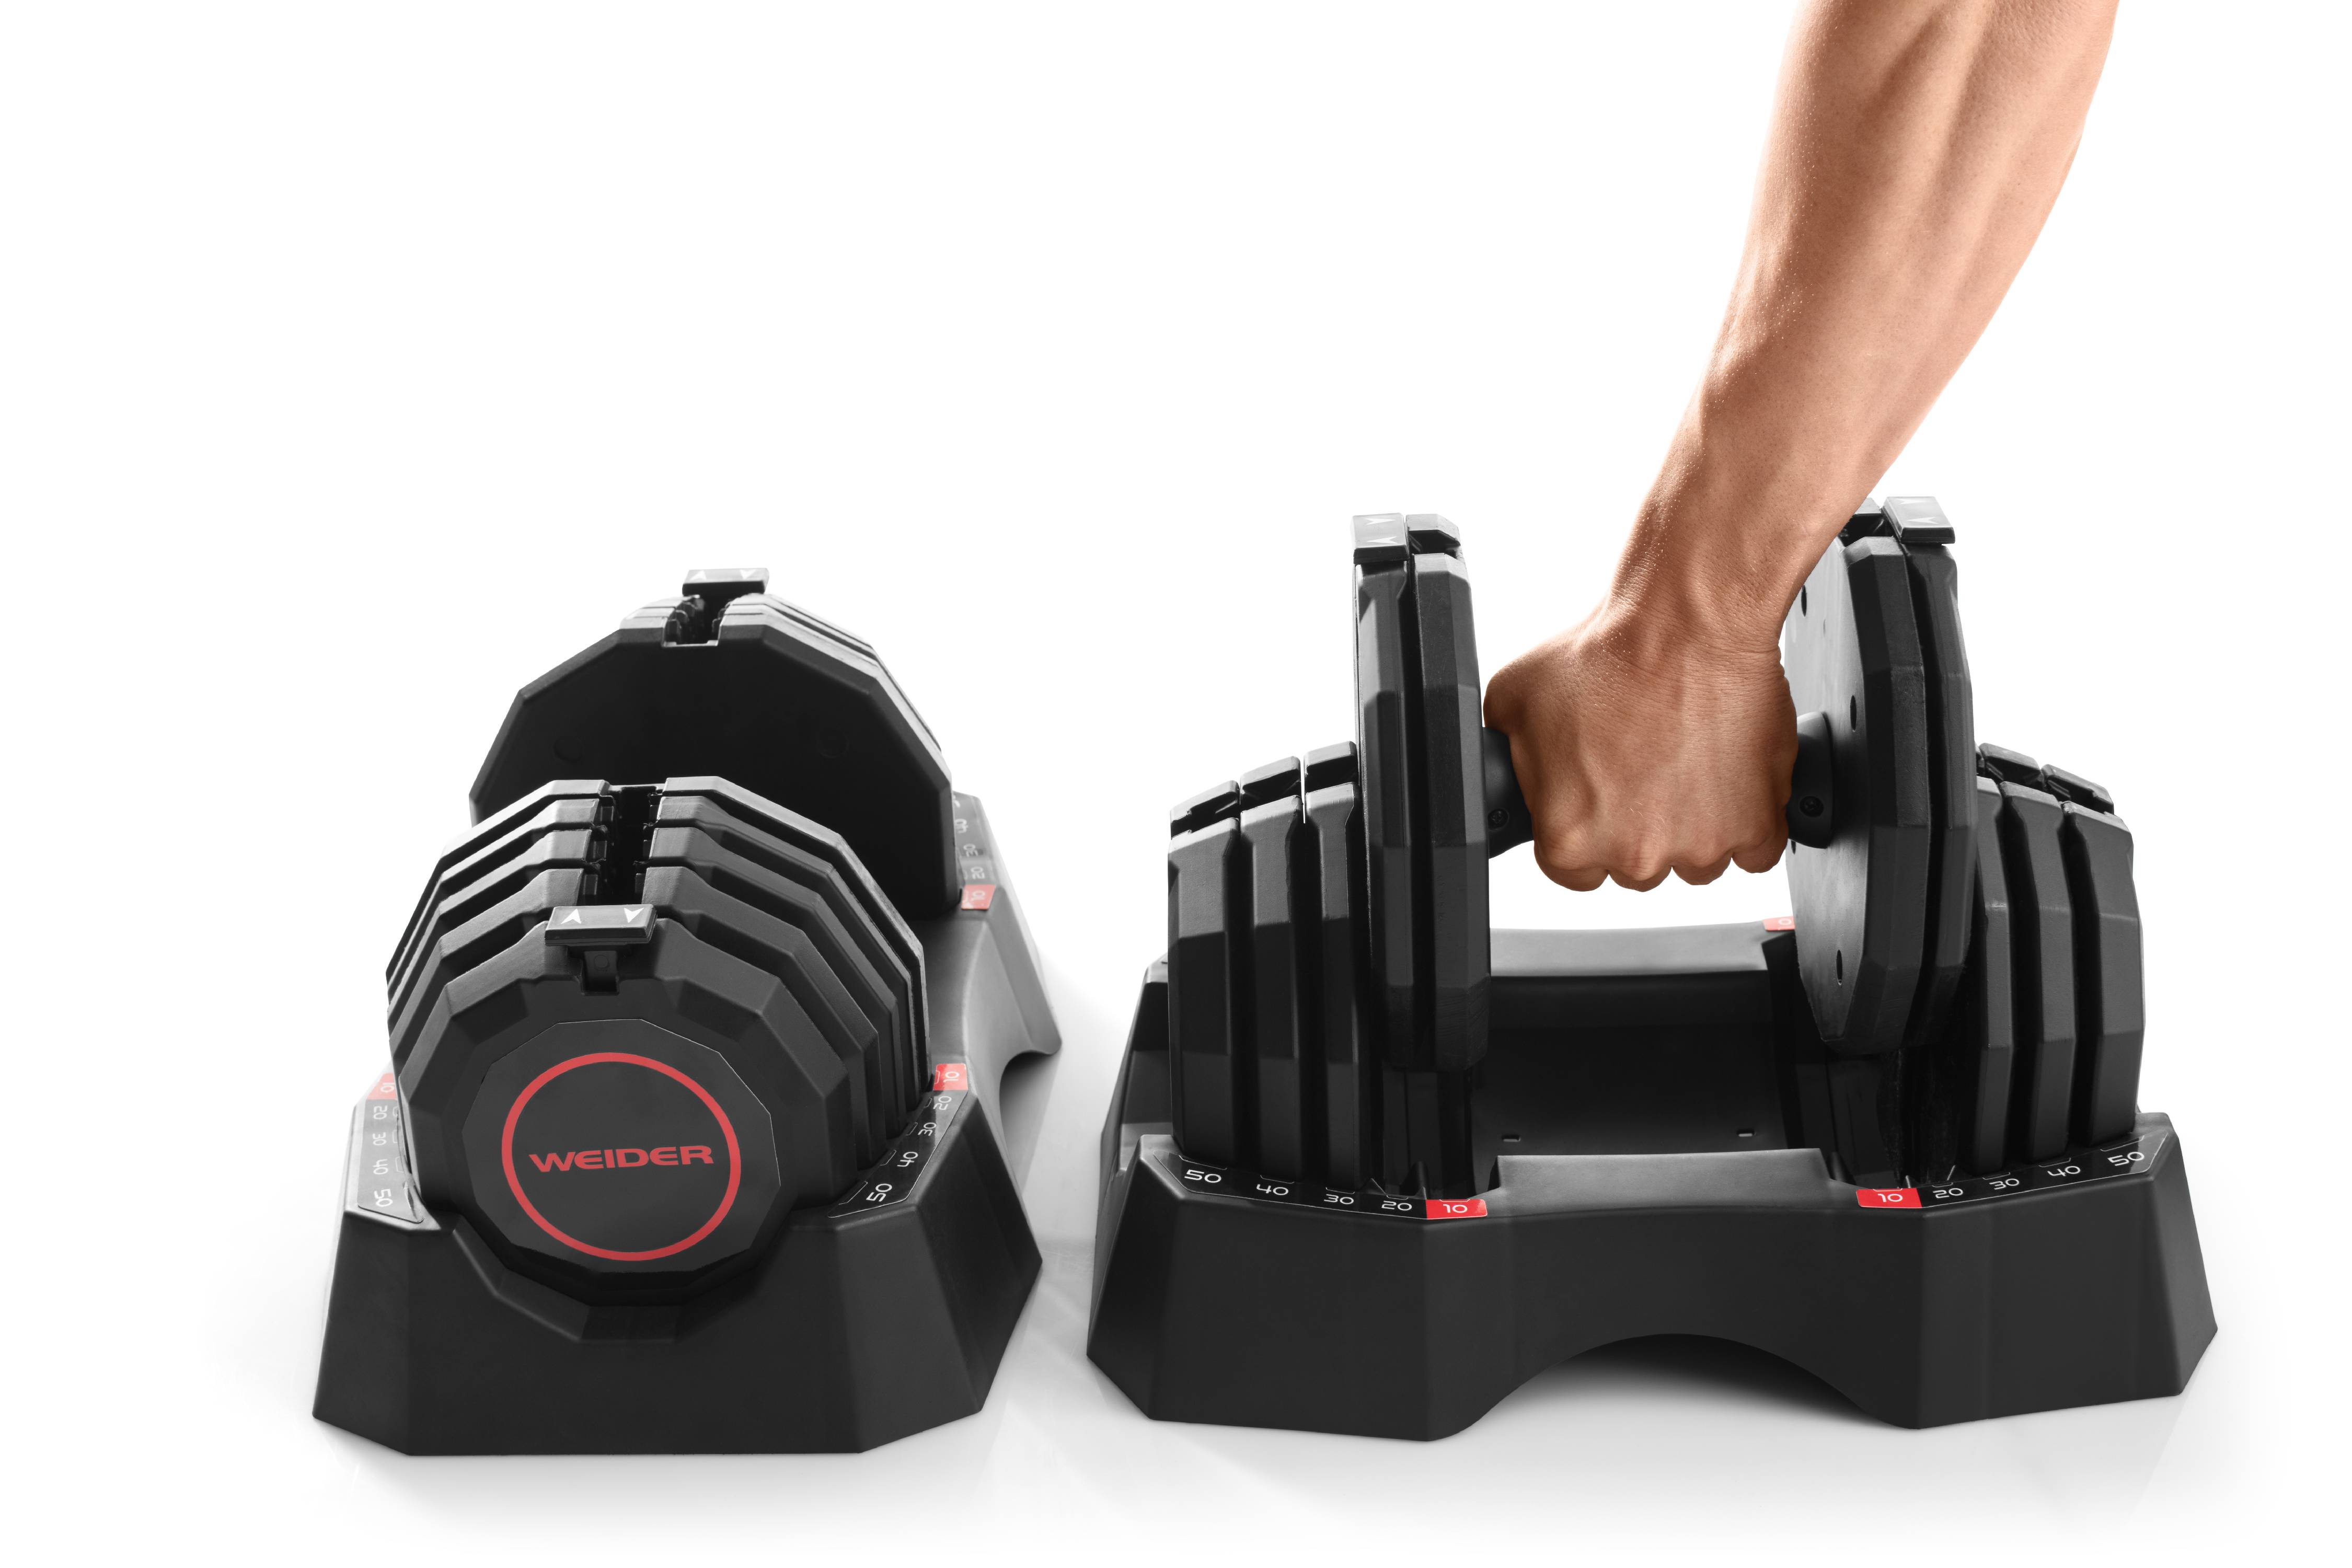 4109419838a Weider Select-a-Weight 50 Lb. Adjustable Dumbbell Set and Storage Tray -  Walmart.com